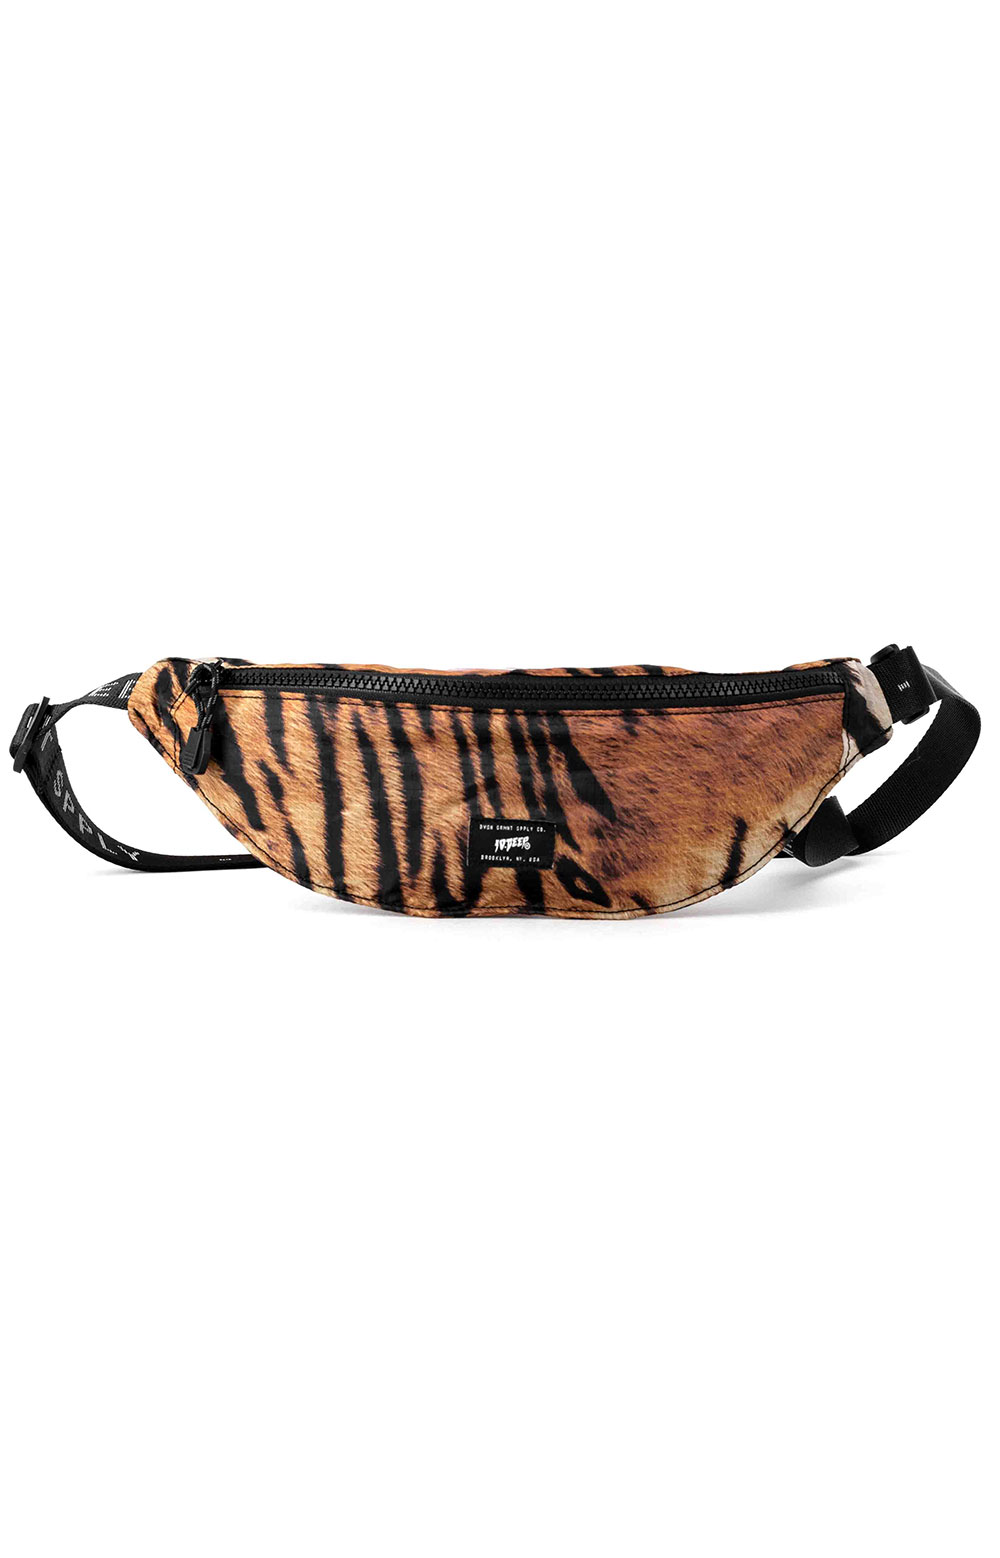 DVSN Sling Pack - Tiger Stripe